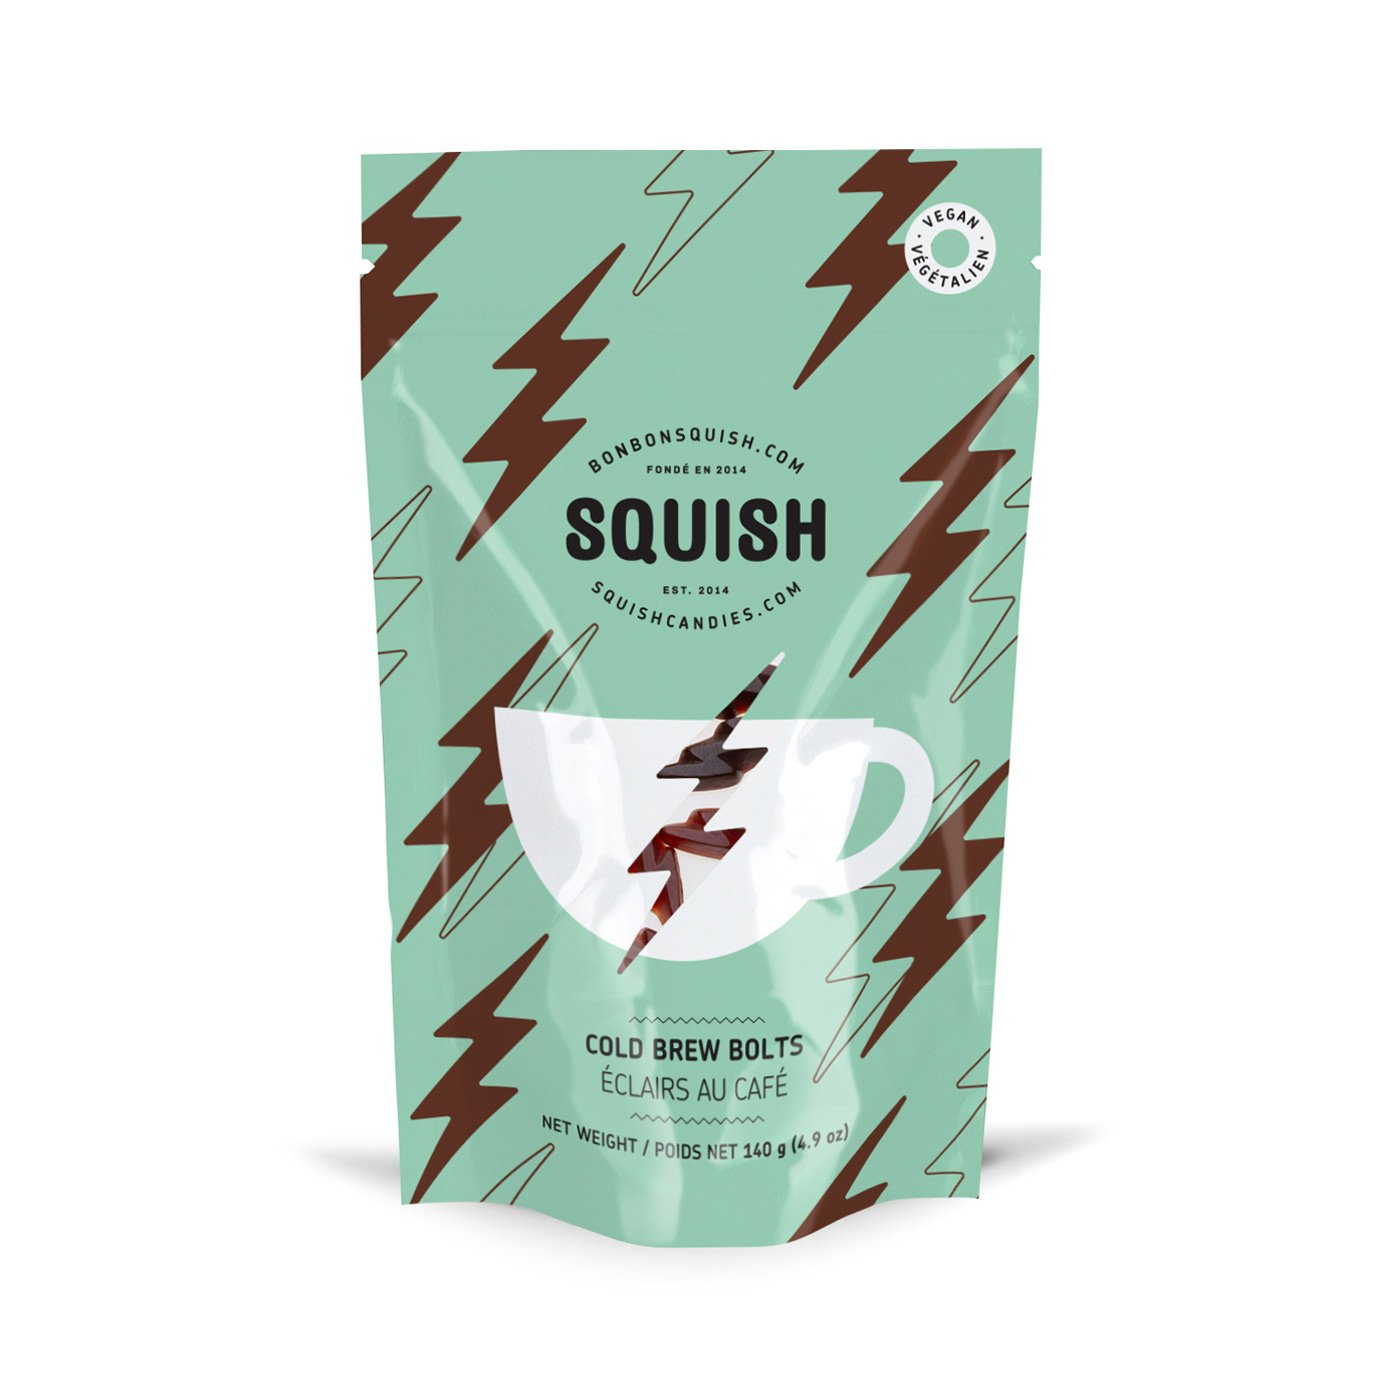 SQUISH Candies Vegan Cold Brew Bolts